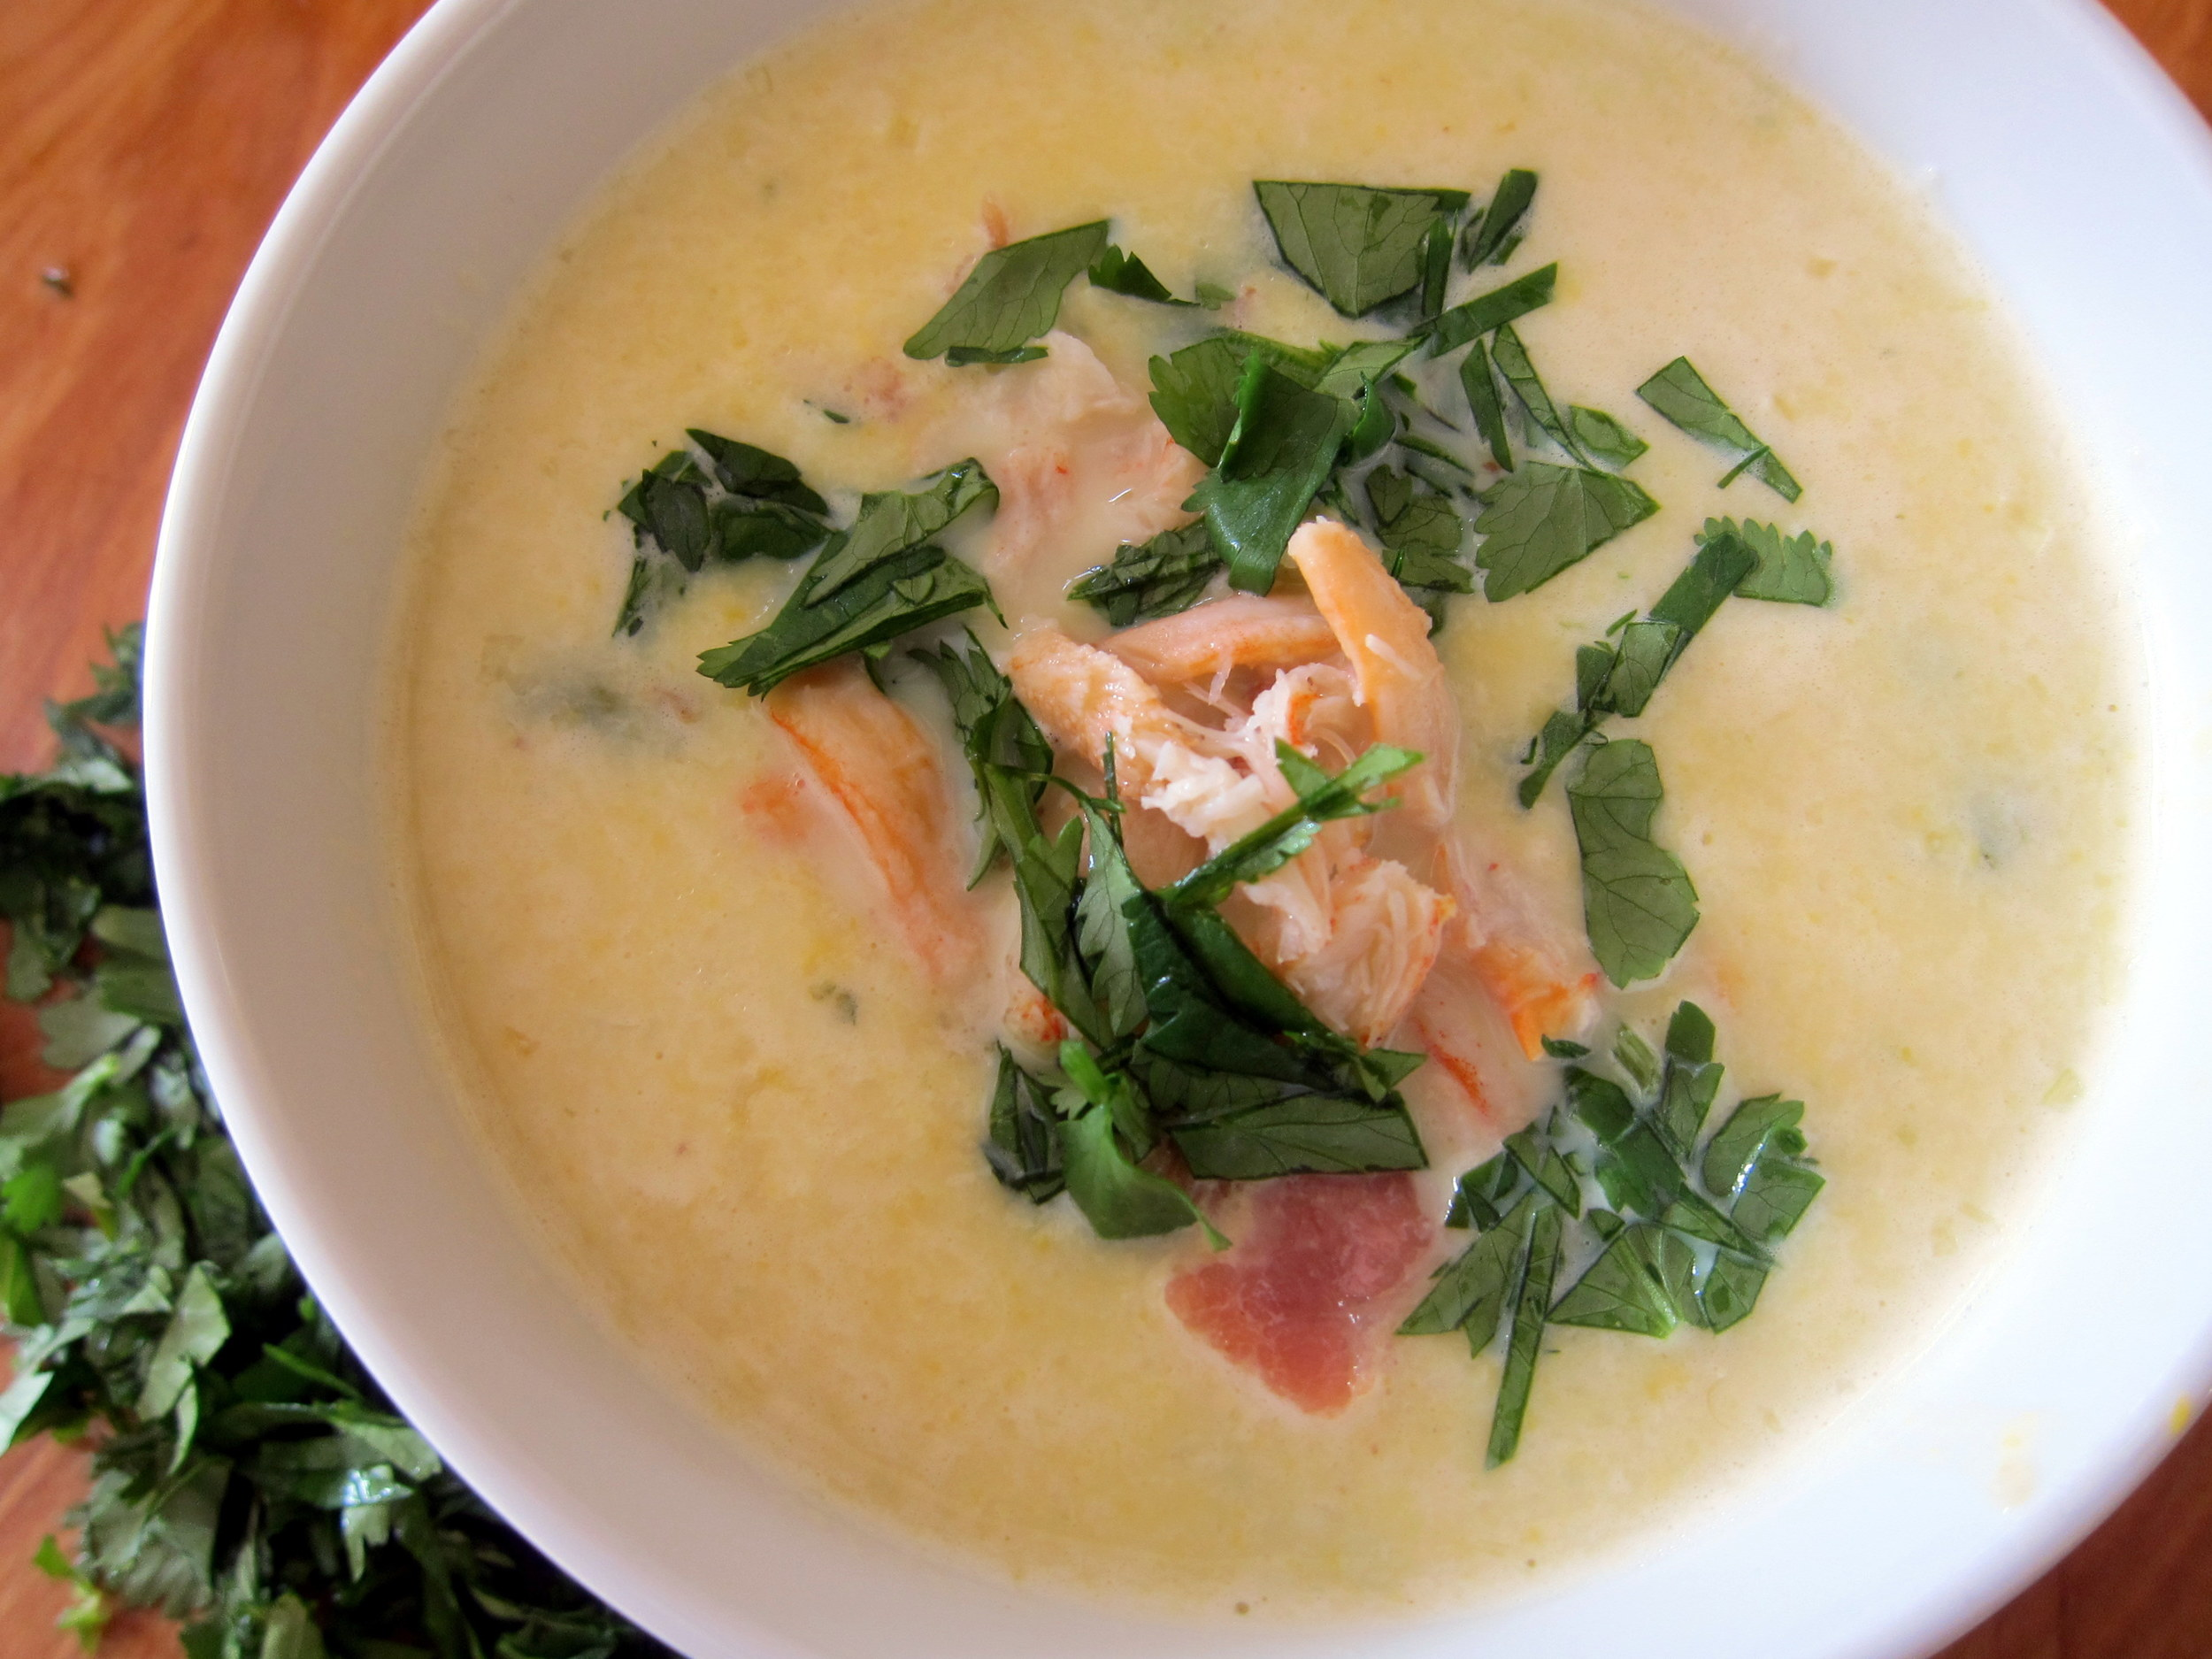 Crema de Elote con Pollo y Poblano: Creamy Corn Soup with Chicken and Poblano Chile